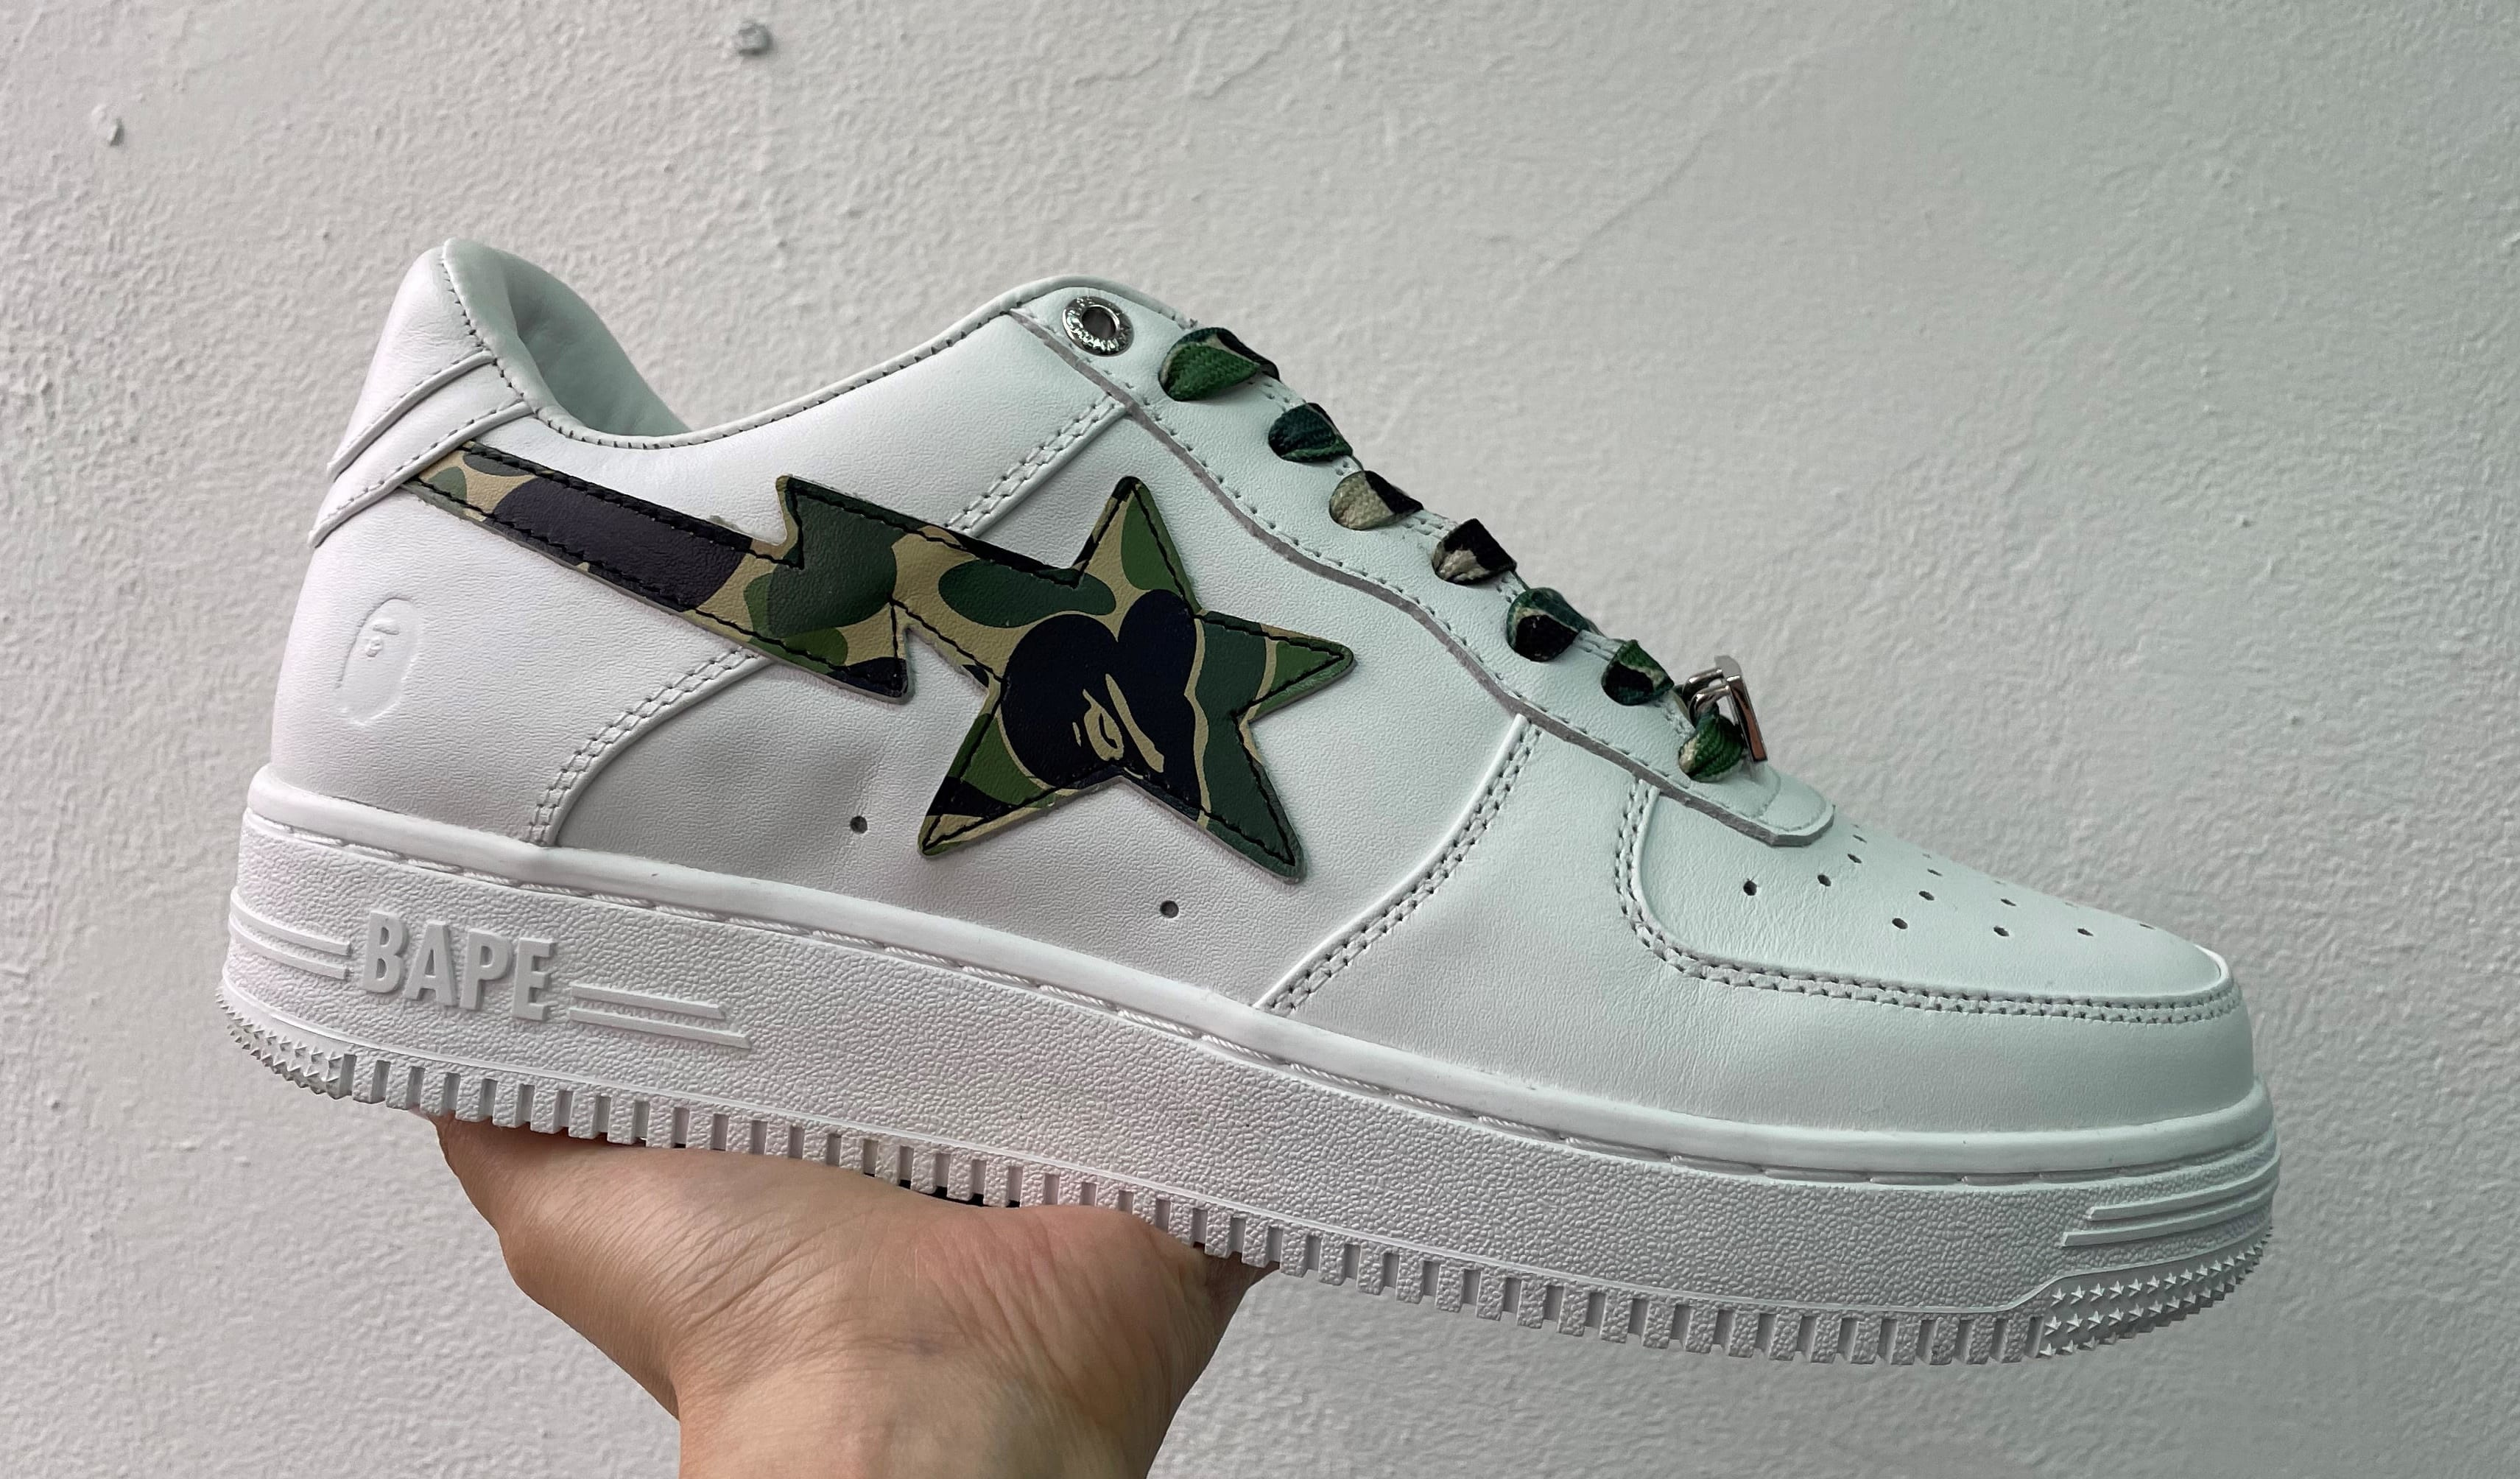 Bape Bape Sta White Green Camo Lateral